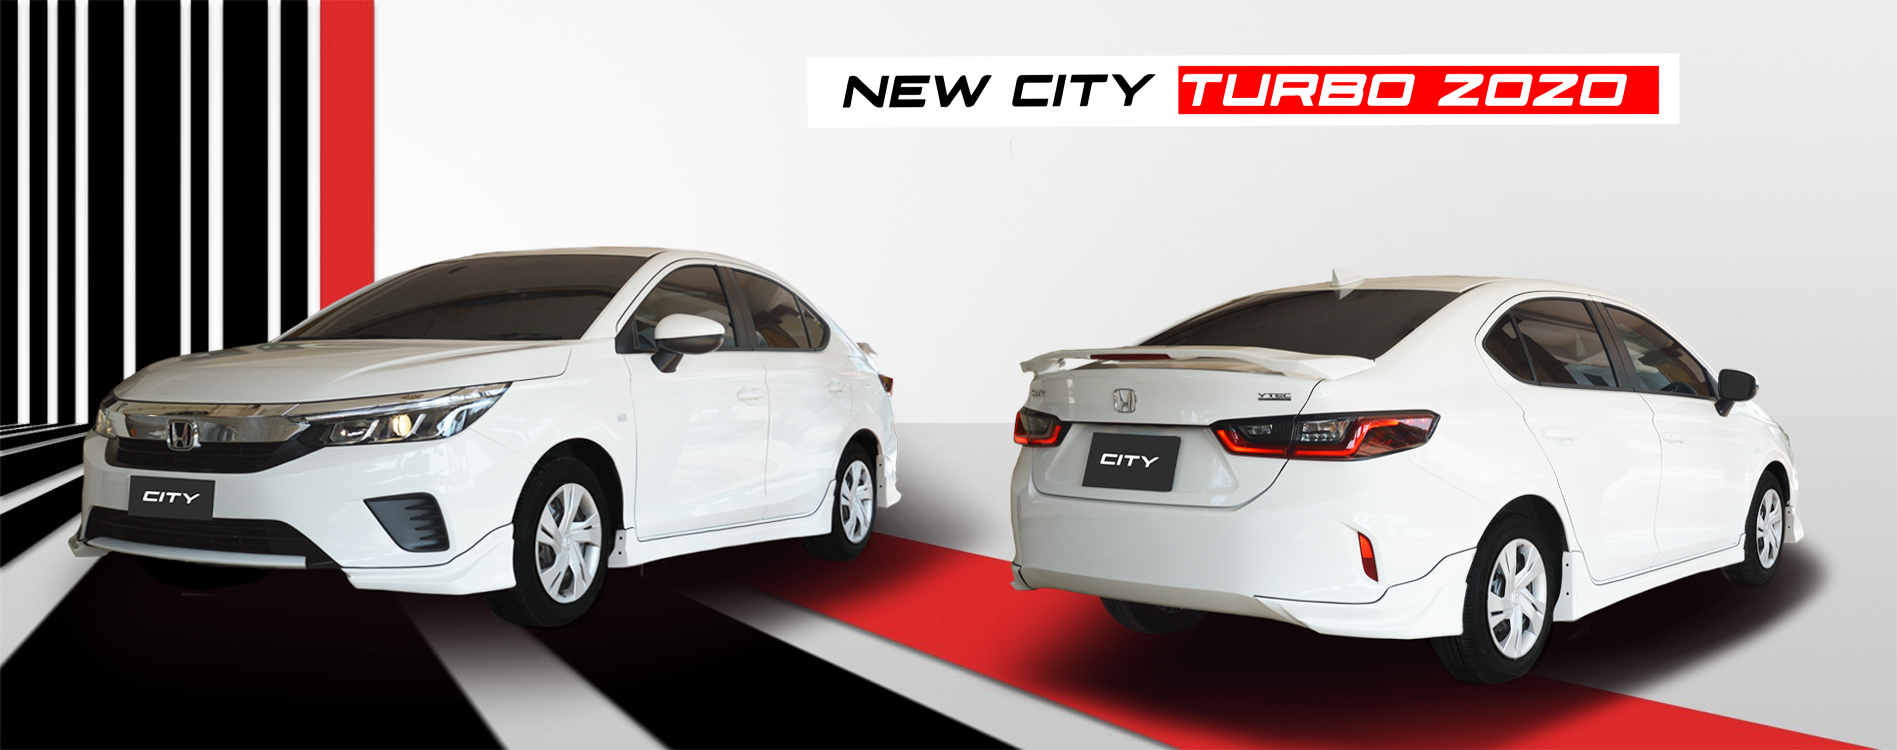 ALL NEW  CITY TURBO 2020